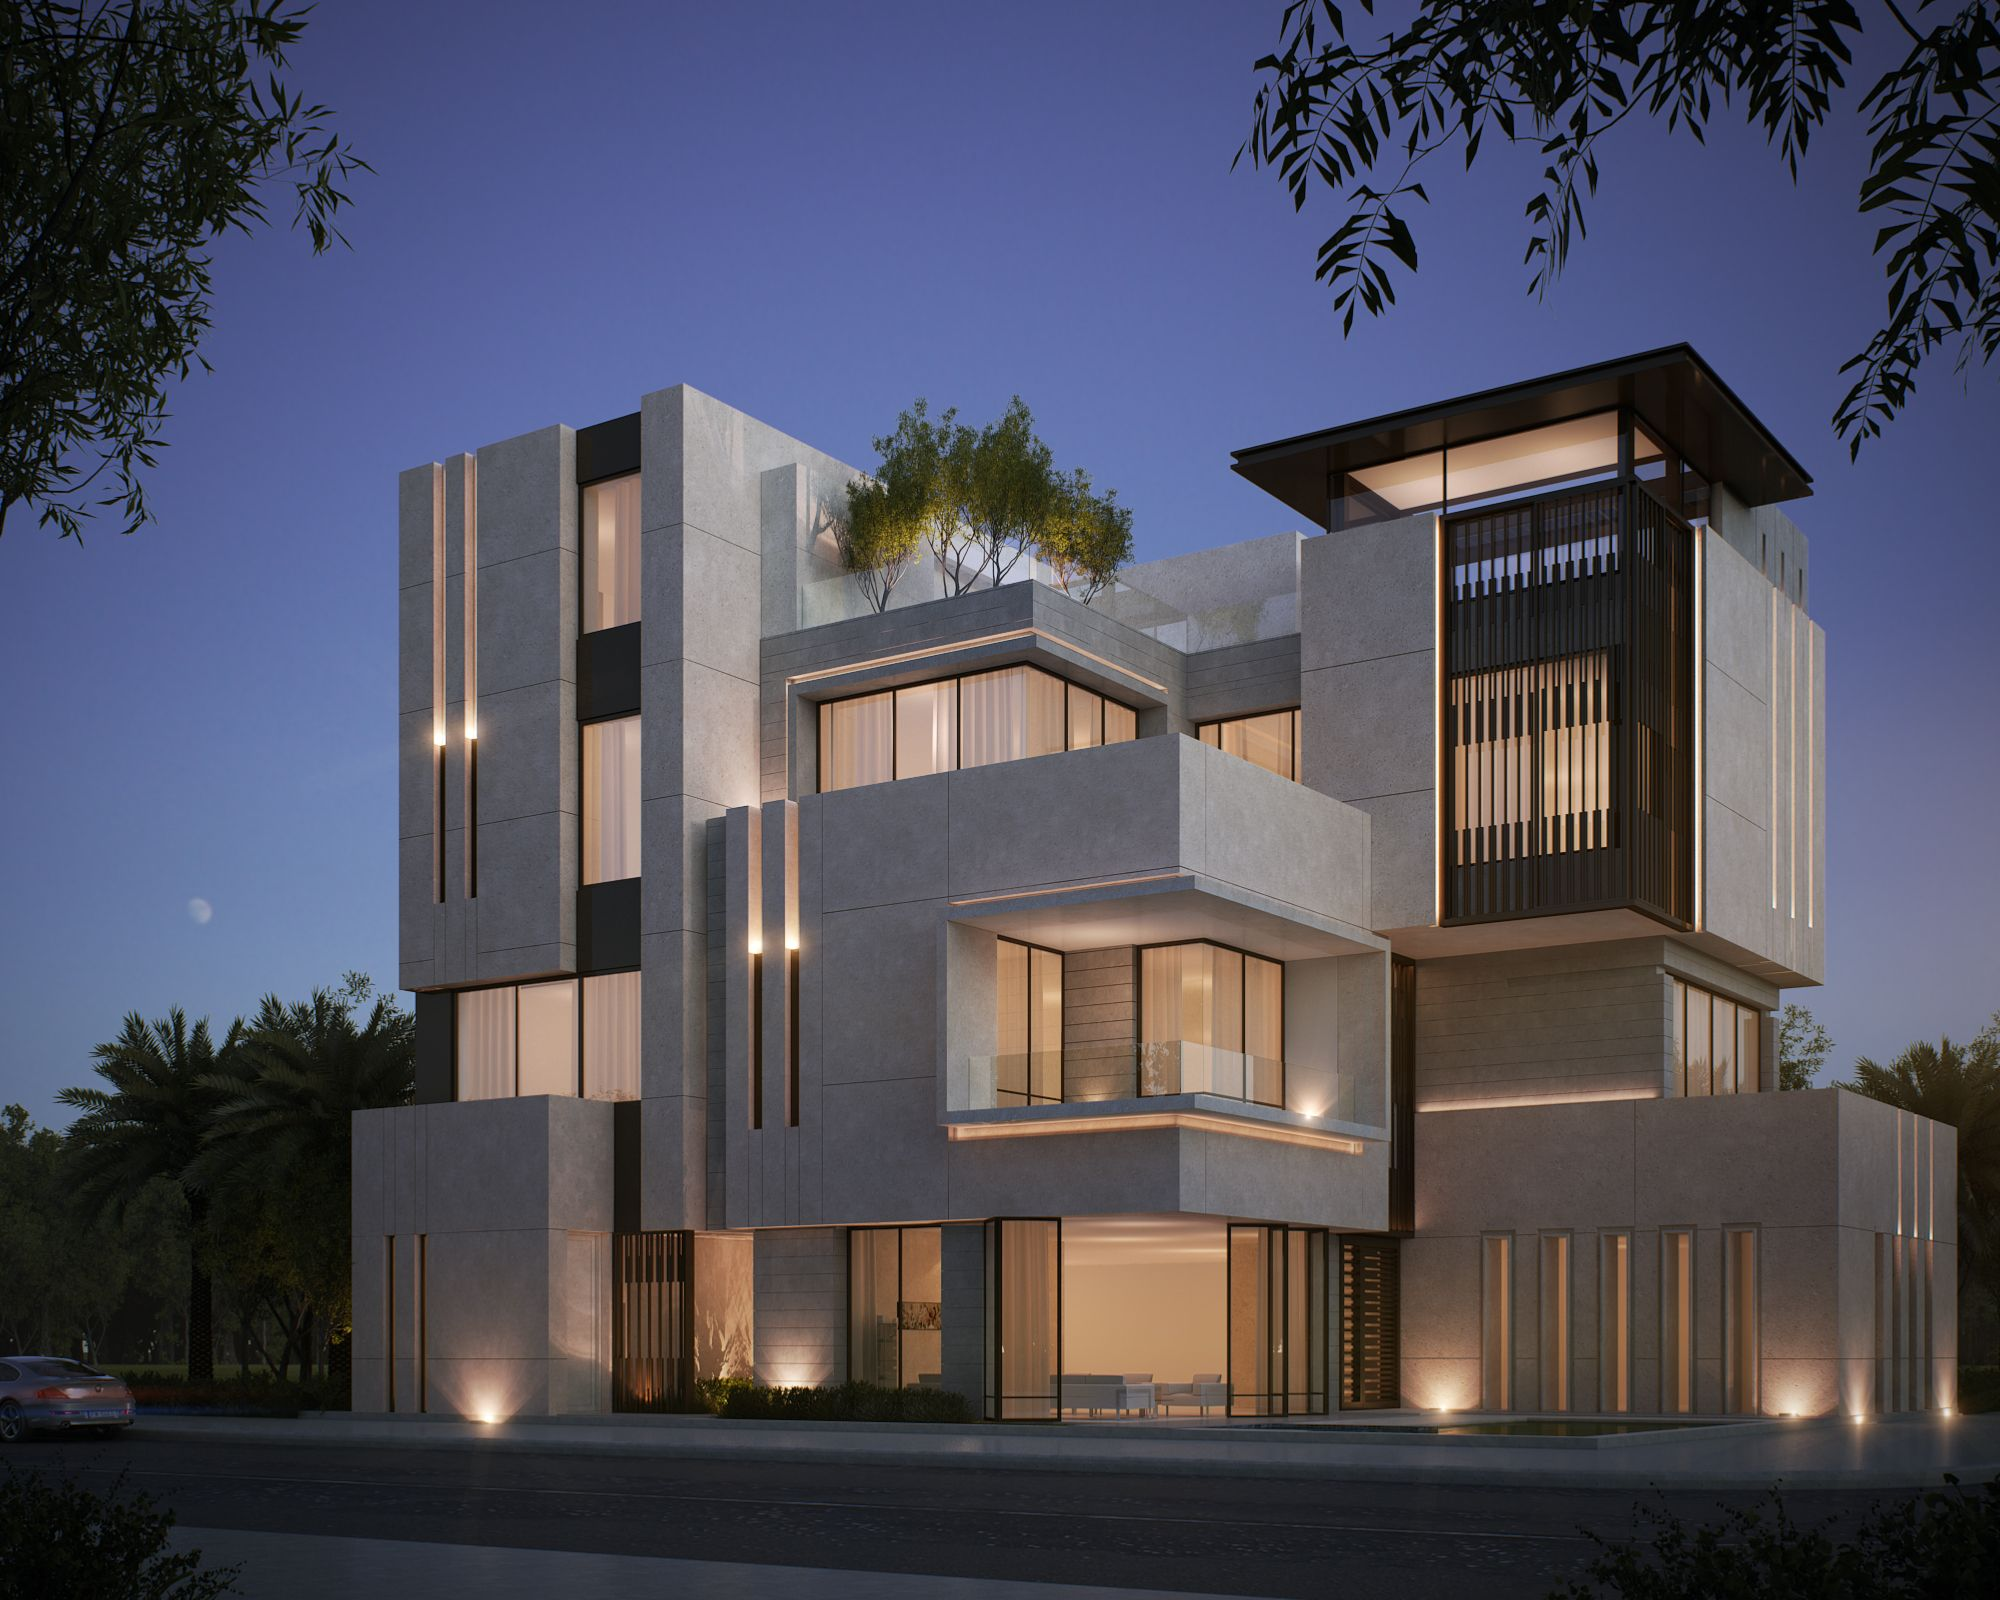 Private villa 500 m kuwait sarah sadeq architects sarah for House plans by architects